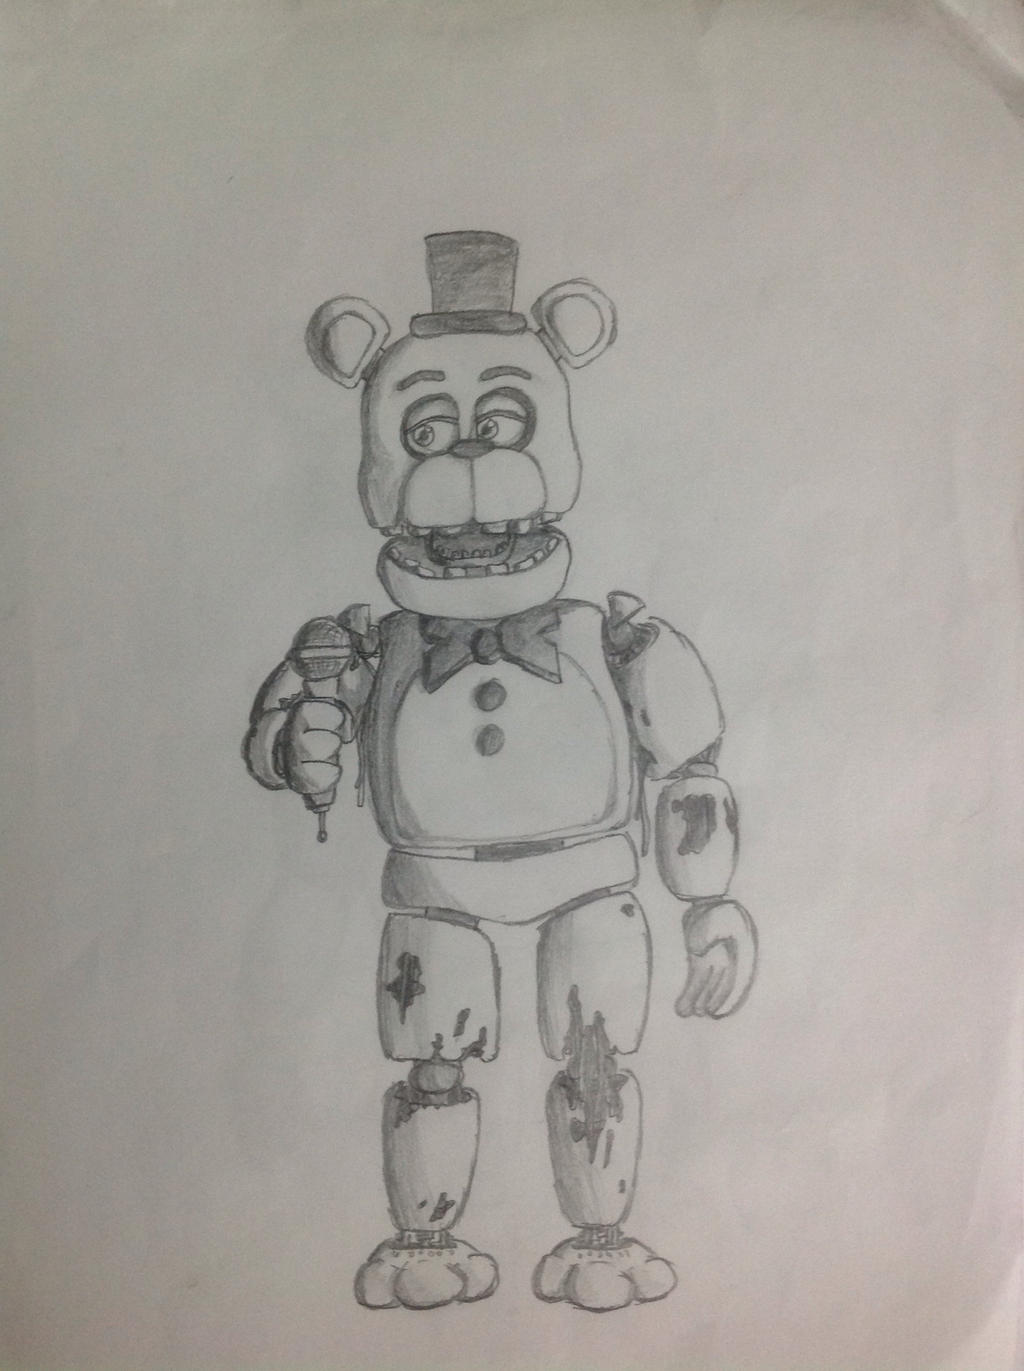 Fnaf Withered Freddy Drawing - Www imagez co